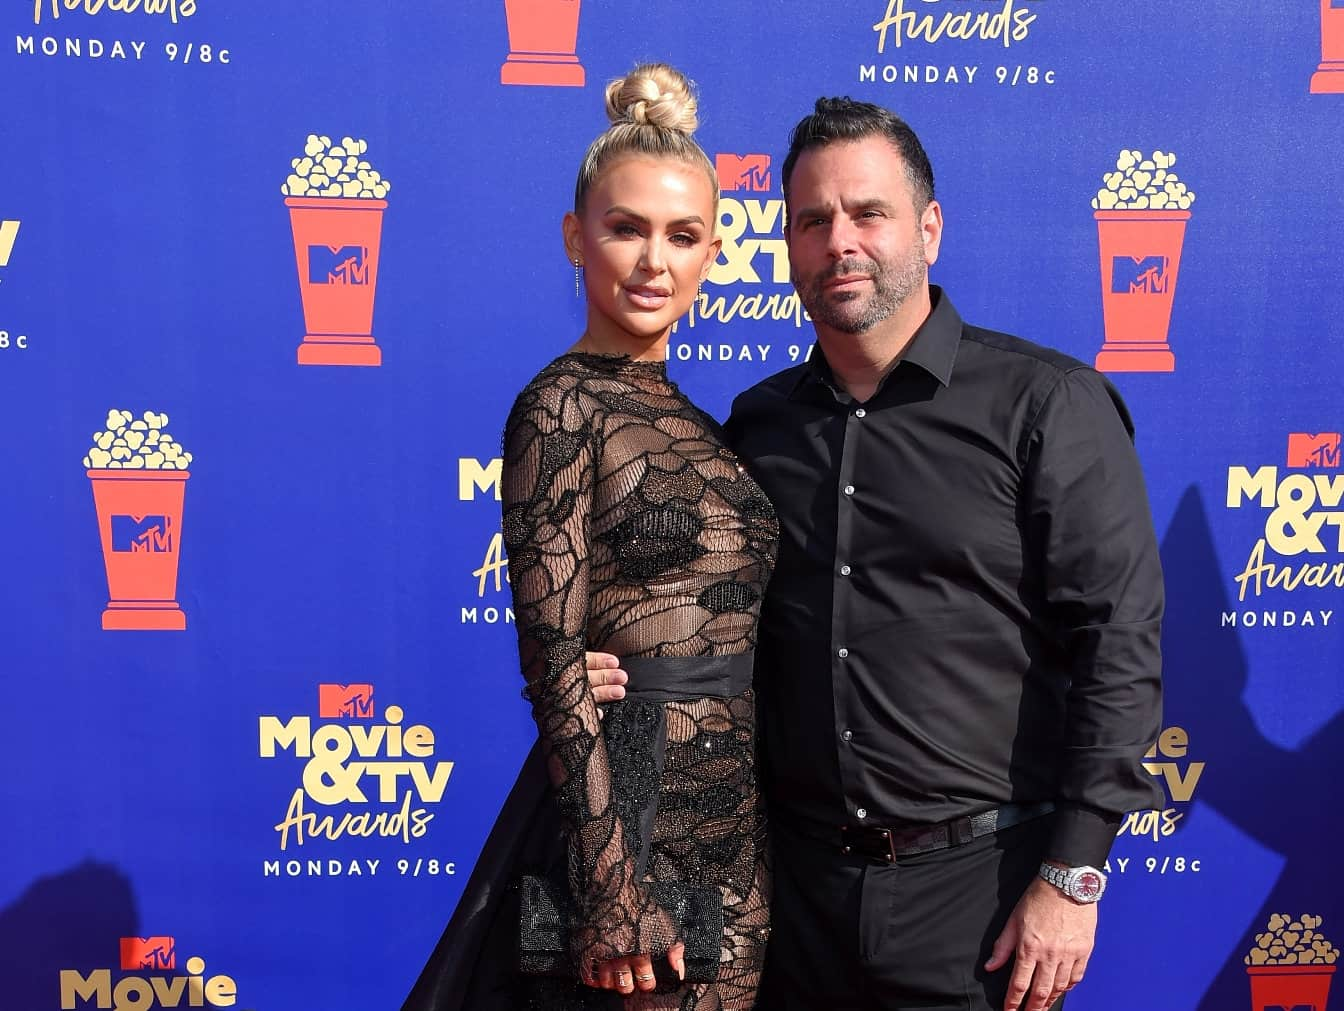 Vanderpump Rules Star Lala Kent Reveals the Real Reason She Deleted Photos of Fiancé Randall Emmett on Instagram